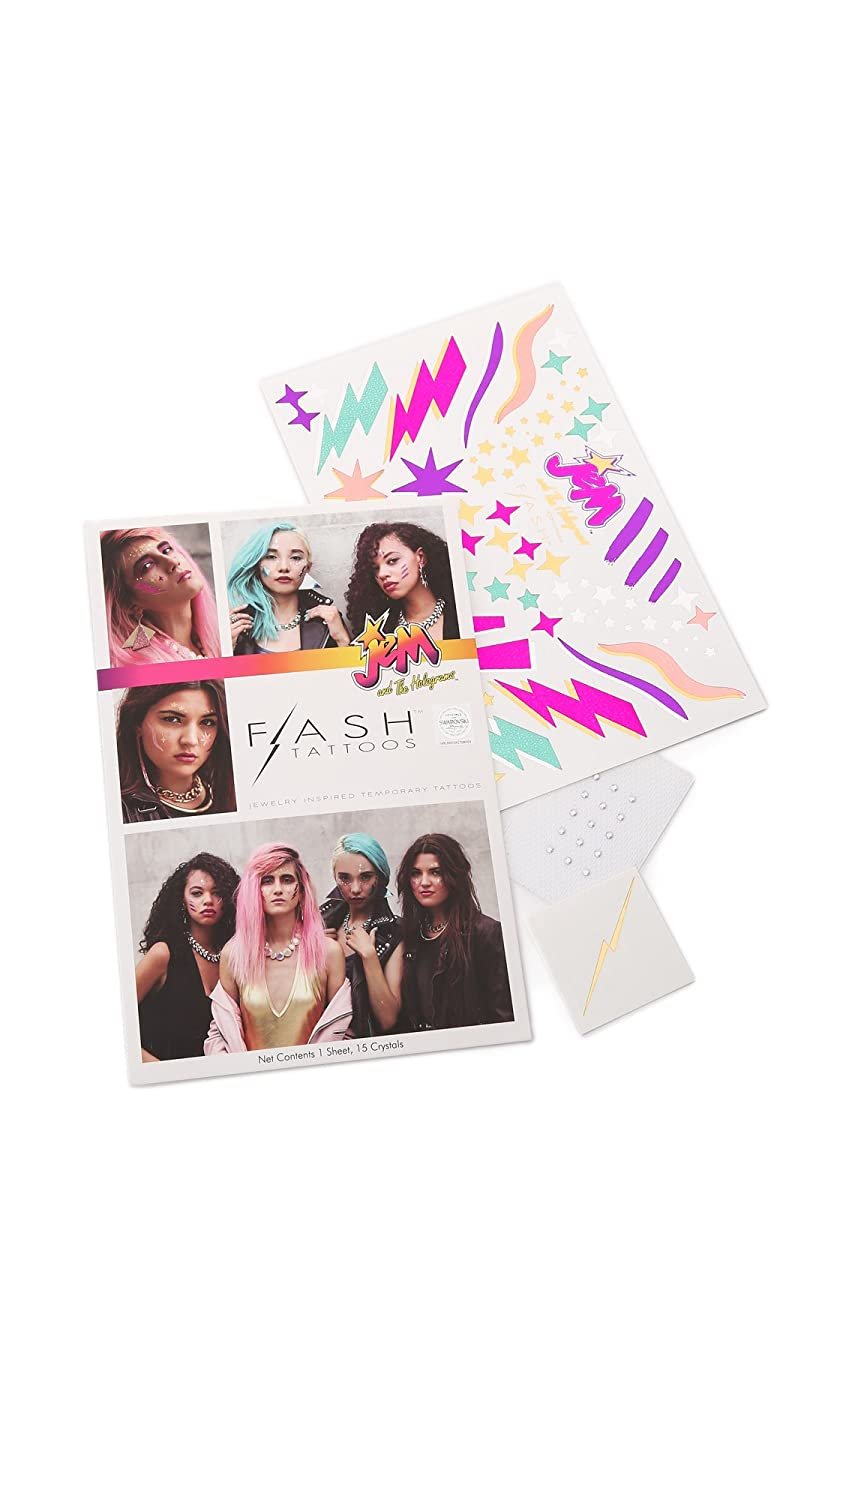 Jem and the Holograms Women's Authentic Flash Tattoos Set with Swarovski Crystals, Multi Color, premium waterproof metallic tattoos